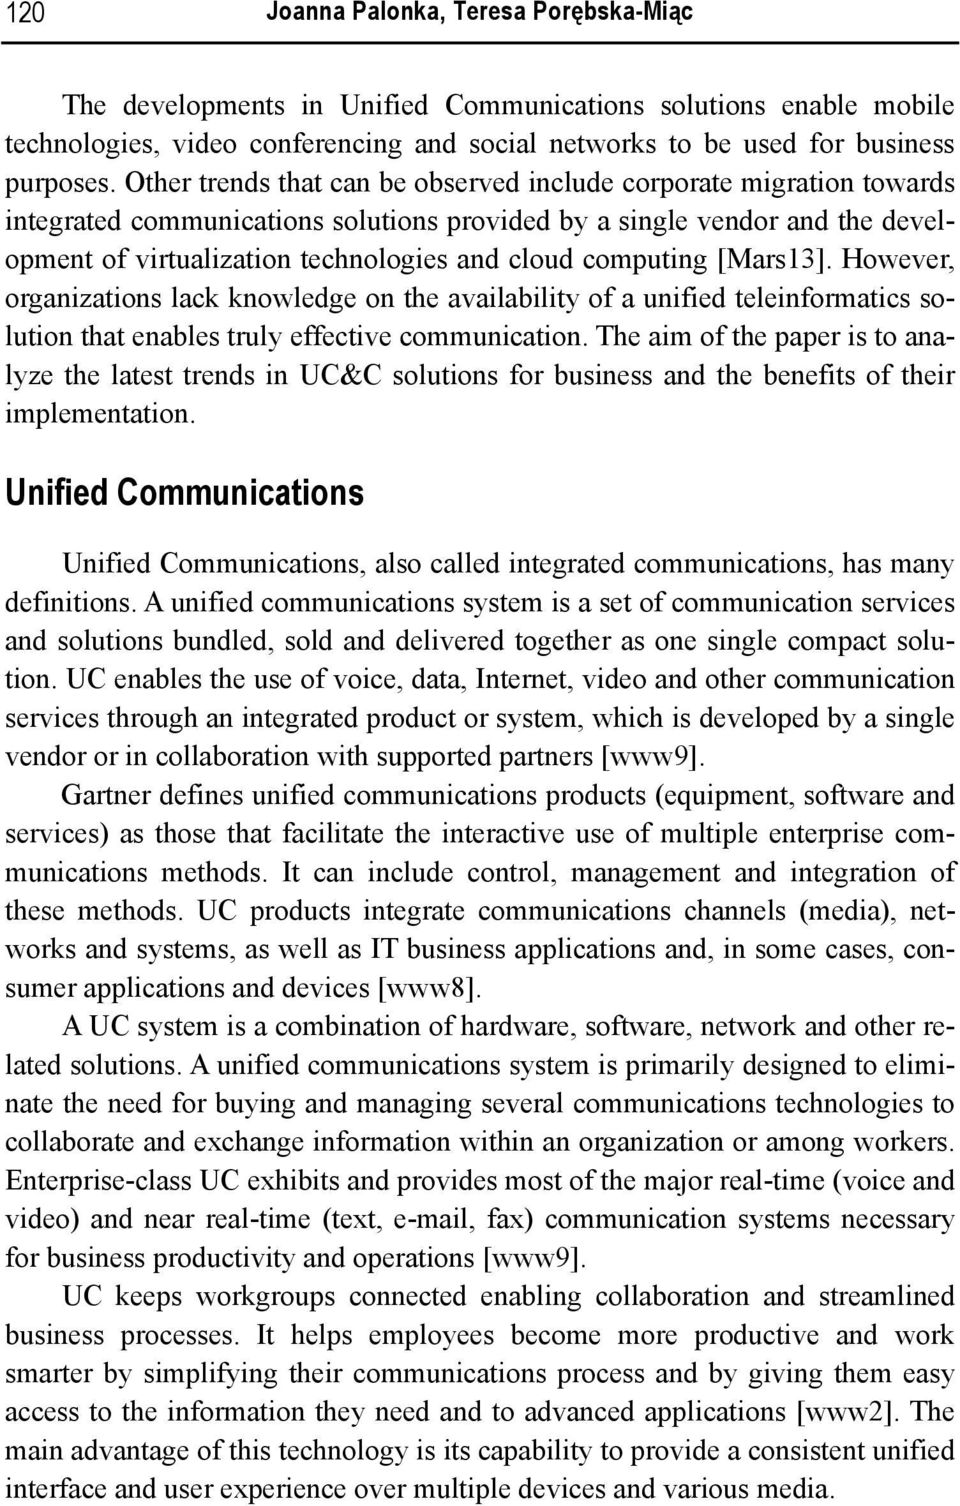 However, organizations lack knowledge on availability a unified teleinformatics solution that enables truly effective communication.